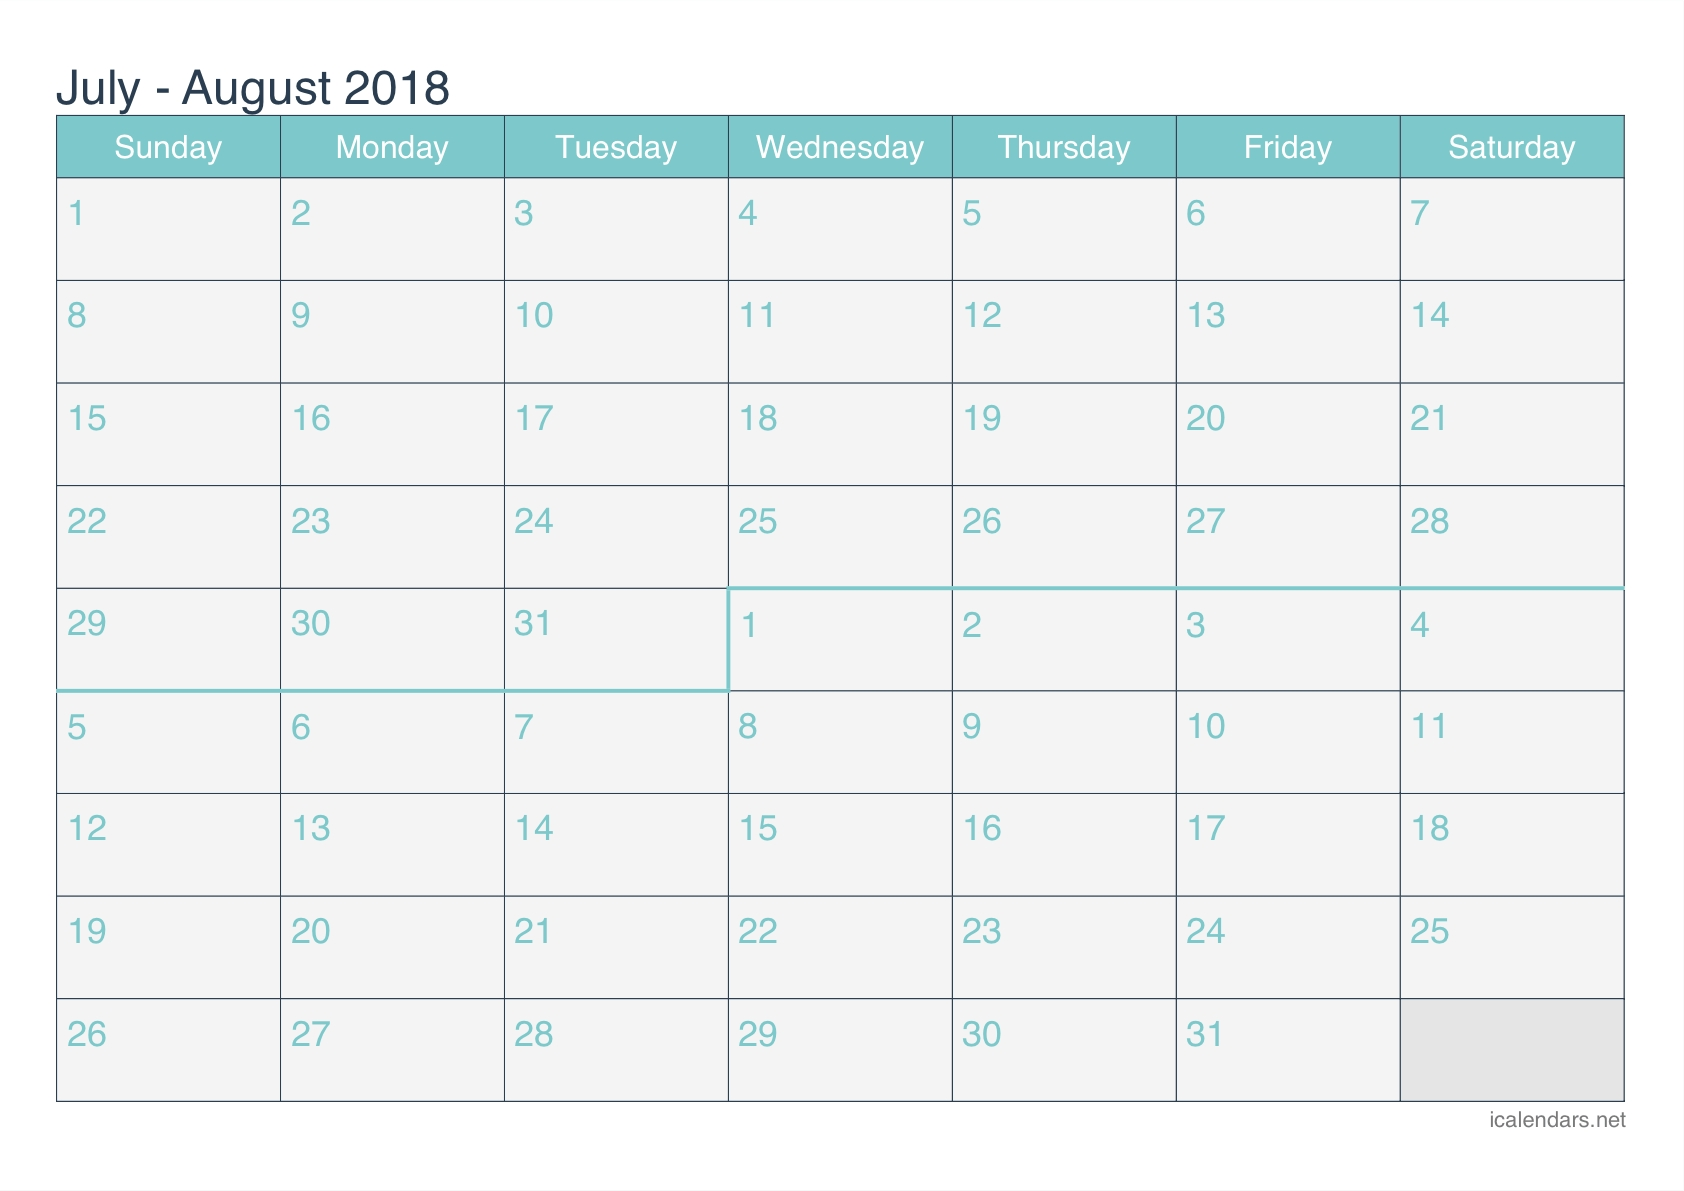 calendar july august 2018 printable template free download Calendar August 2018 Printable Free erdferdf